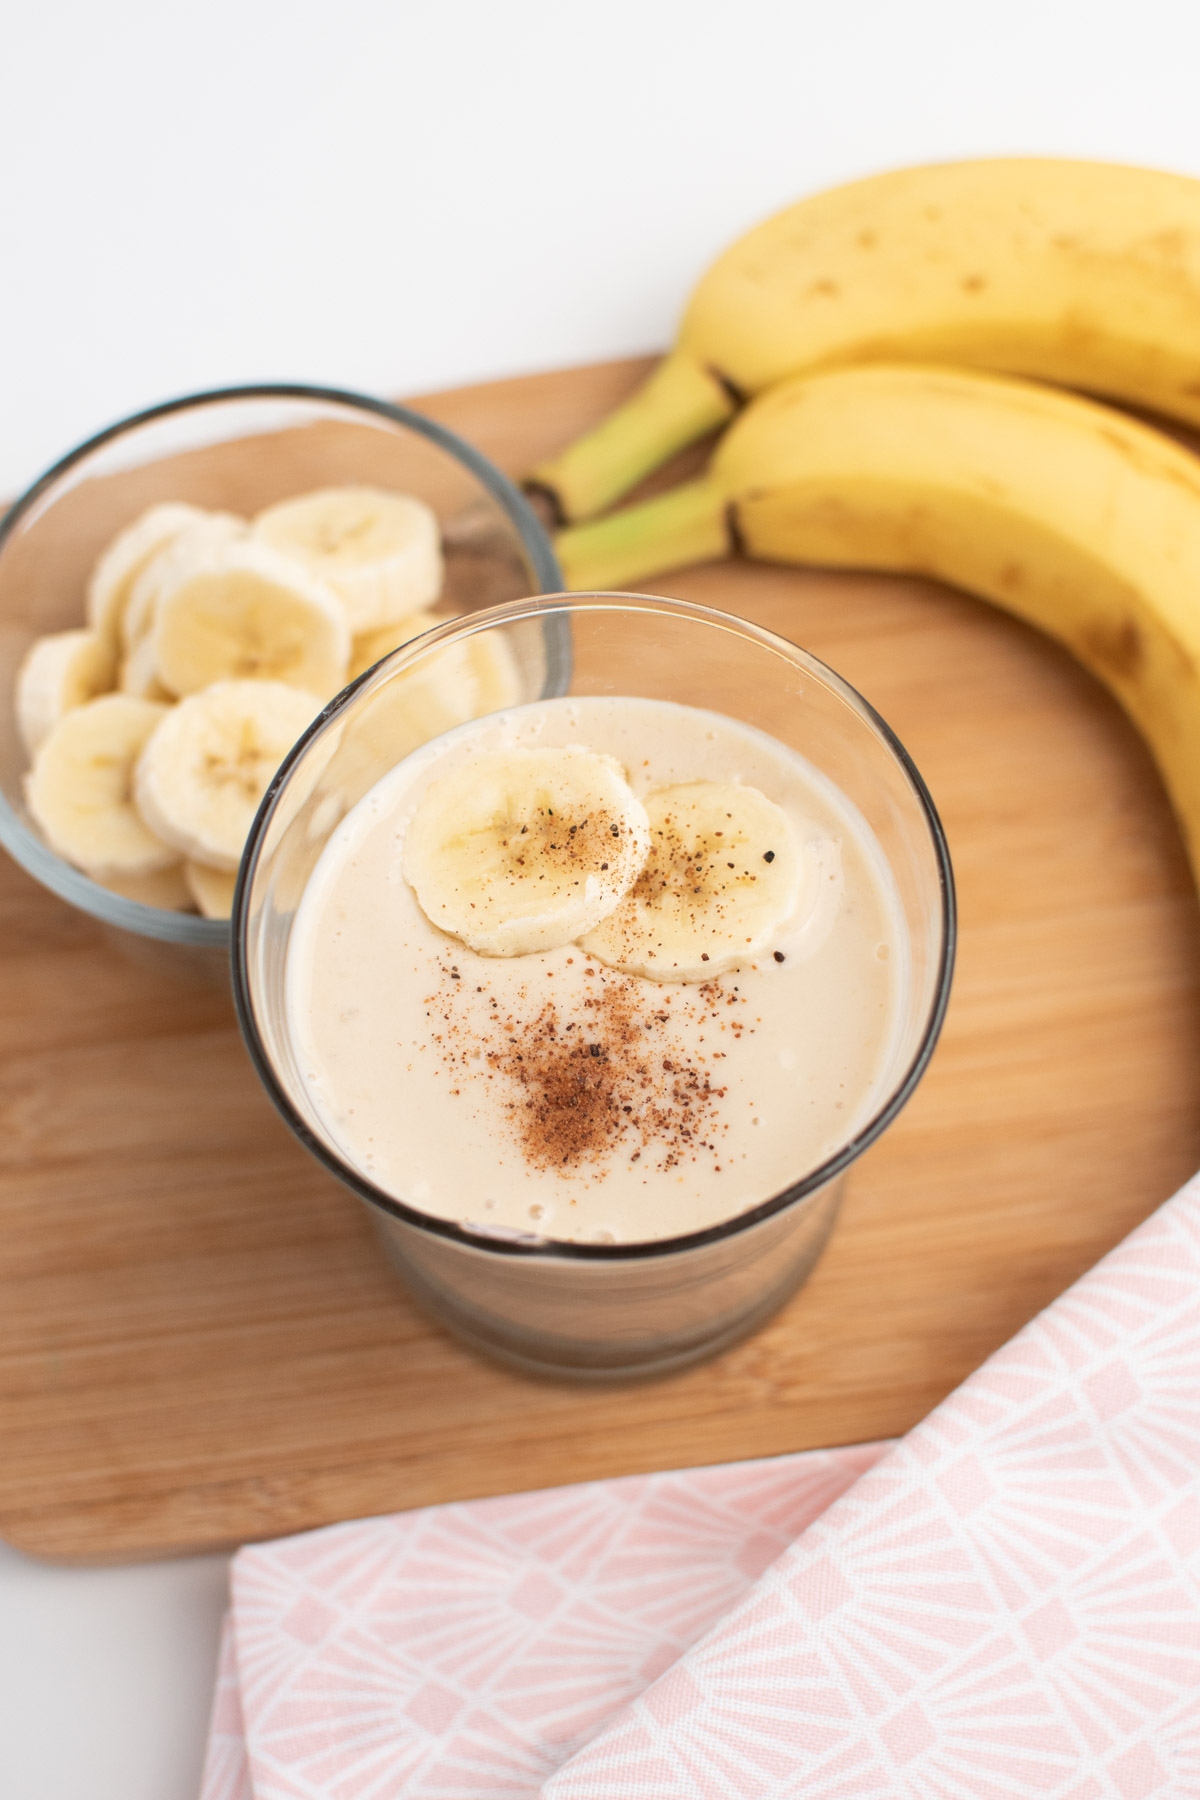 Banana smoothie with nutmeg and sliced bananas in glass next to container of sliced bananas.